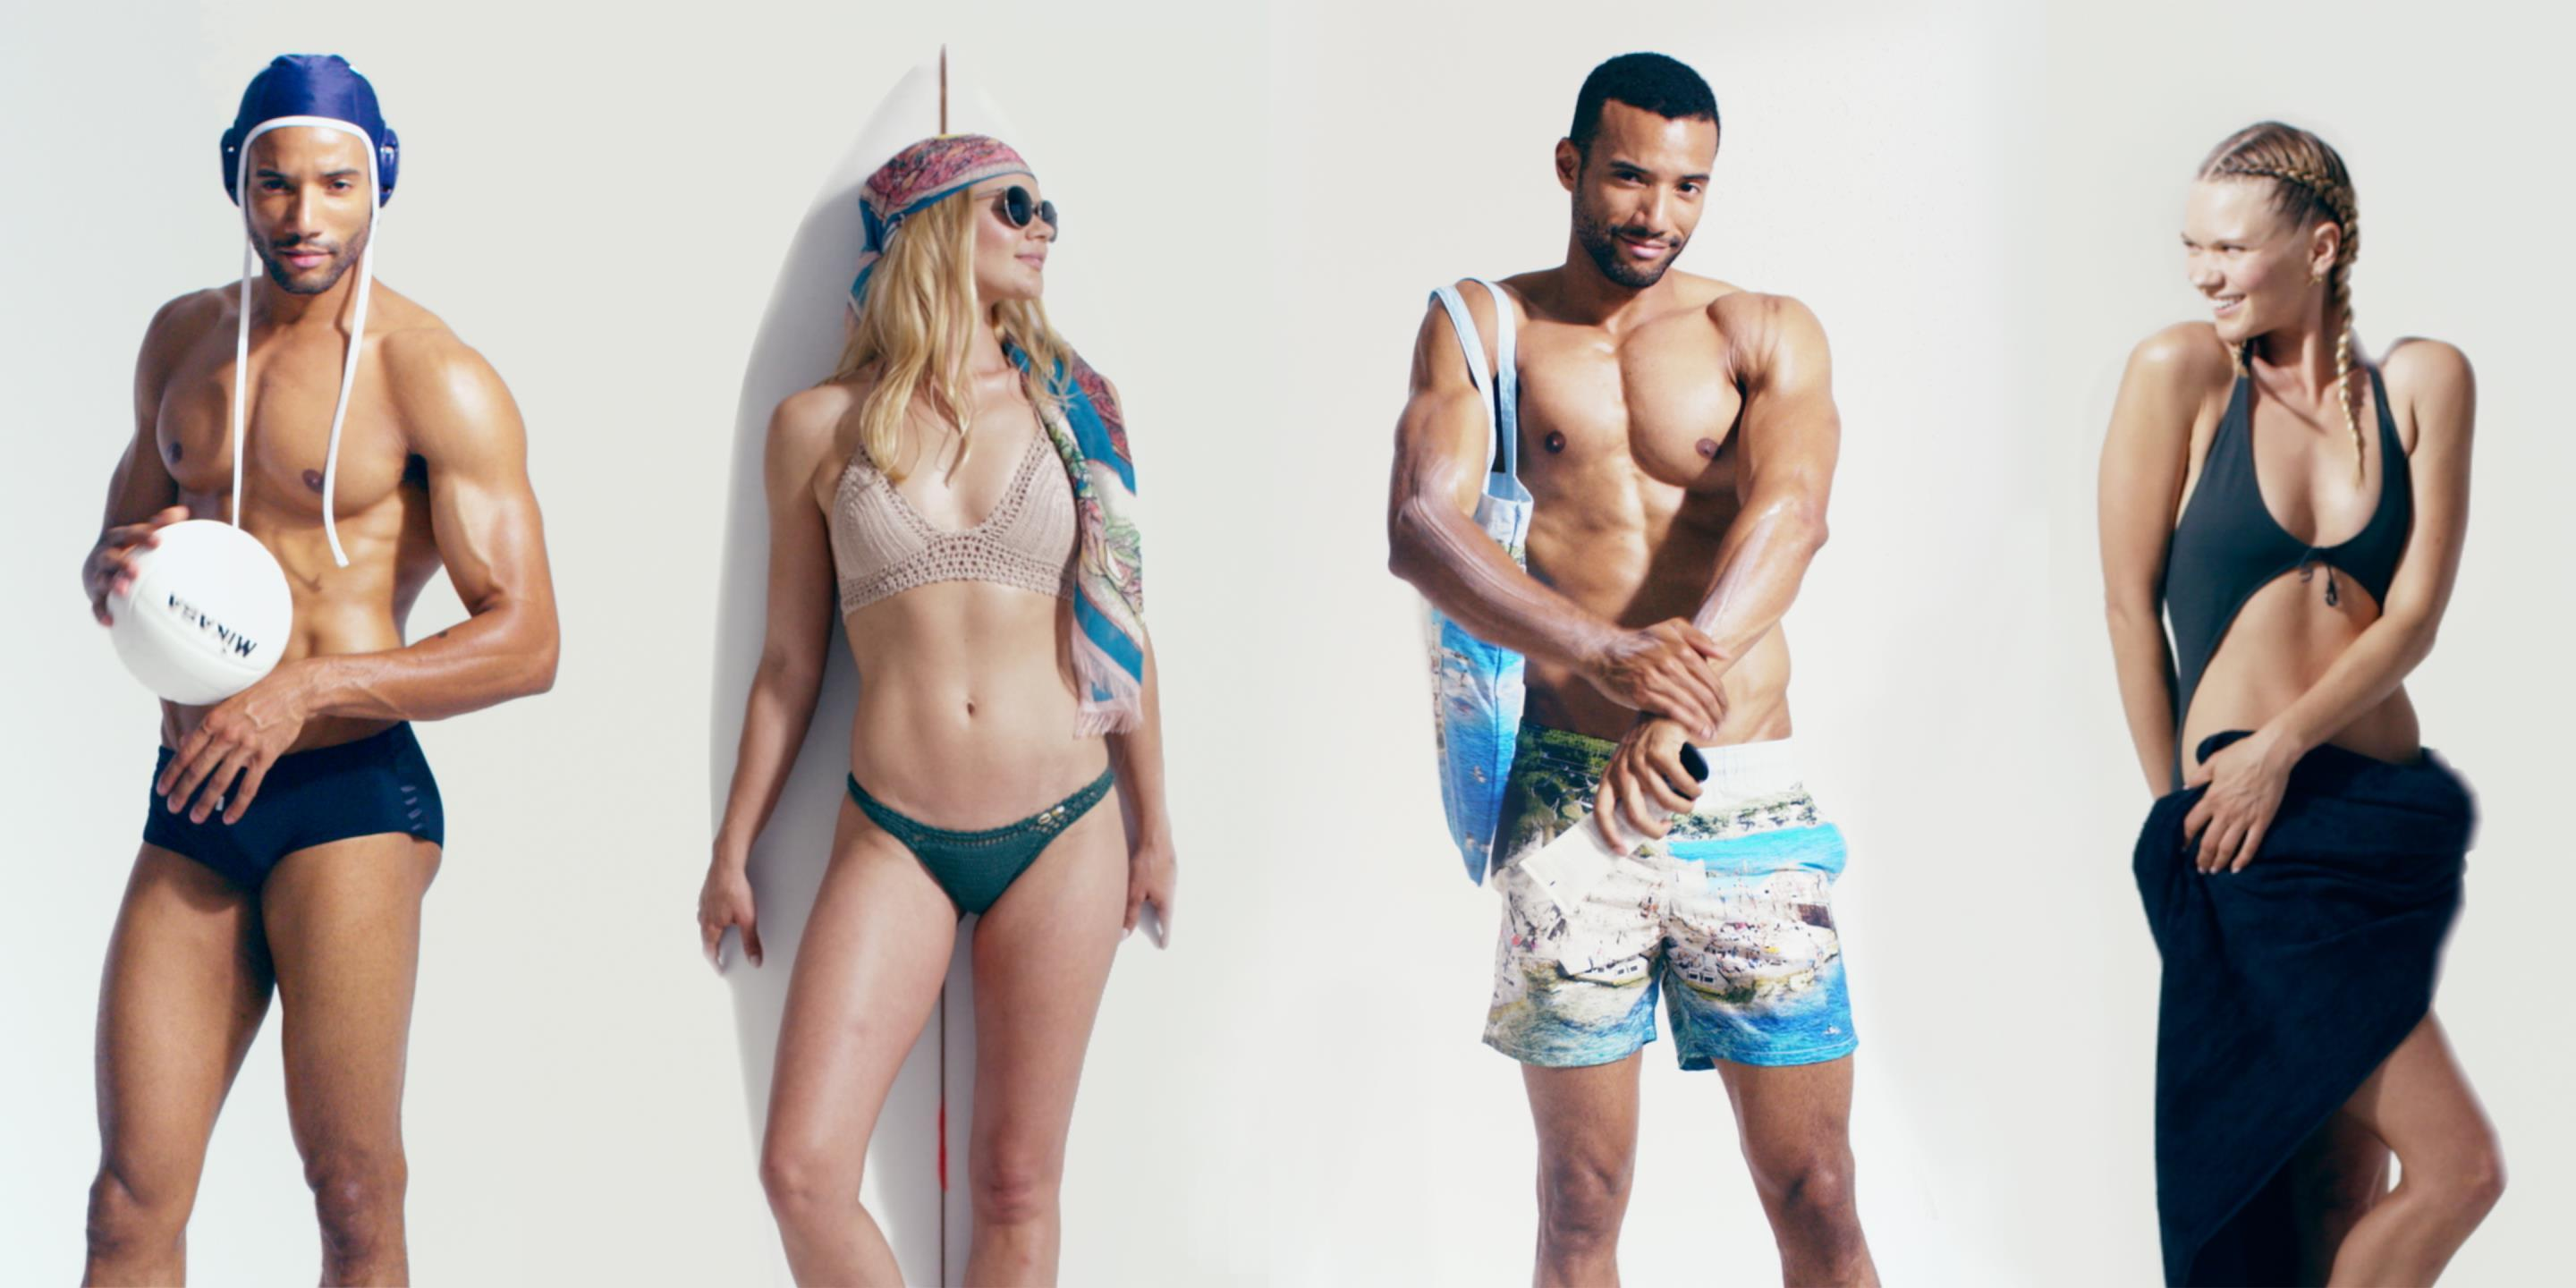 d31f3d55bc Bikinis, One-pieces, and swimming trunks: Best swimsuit trends for ...